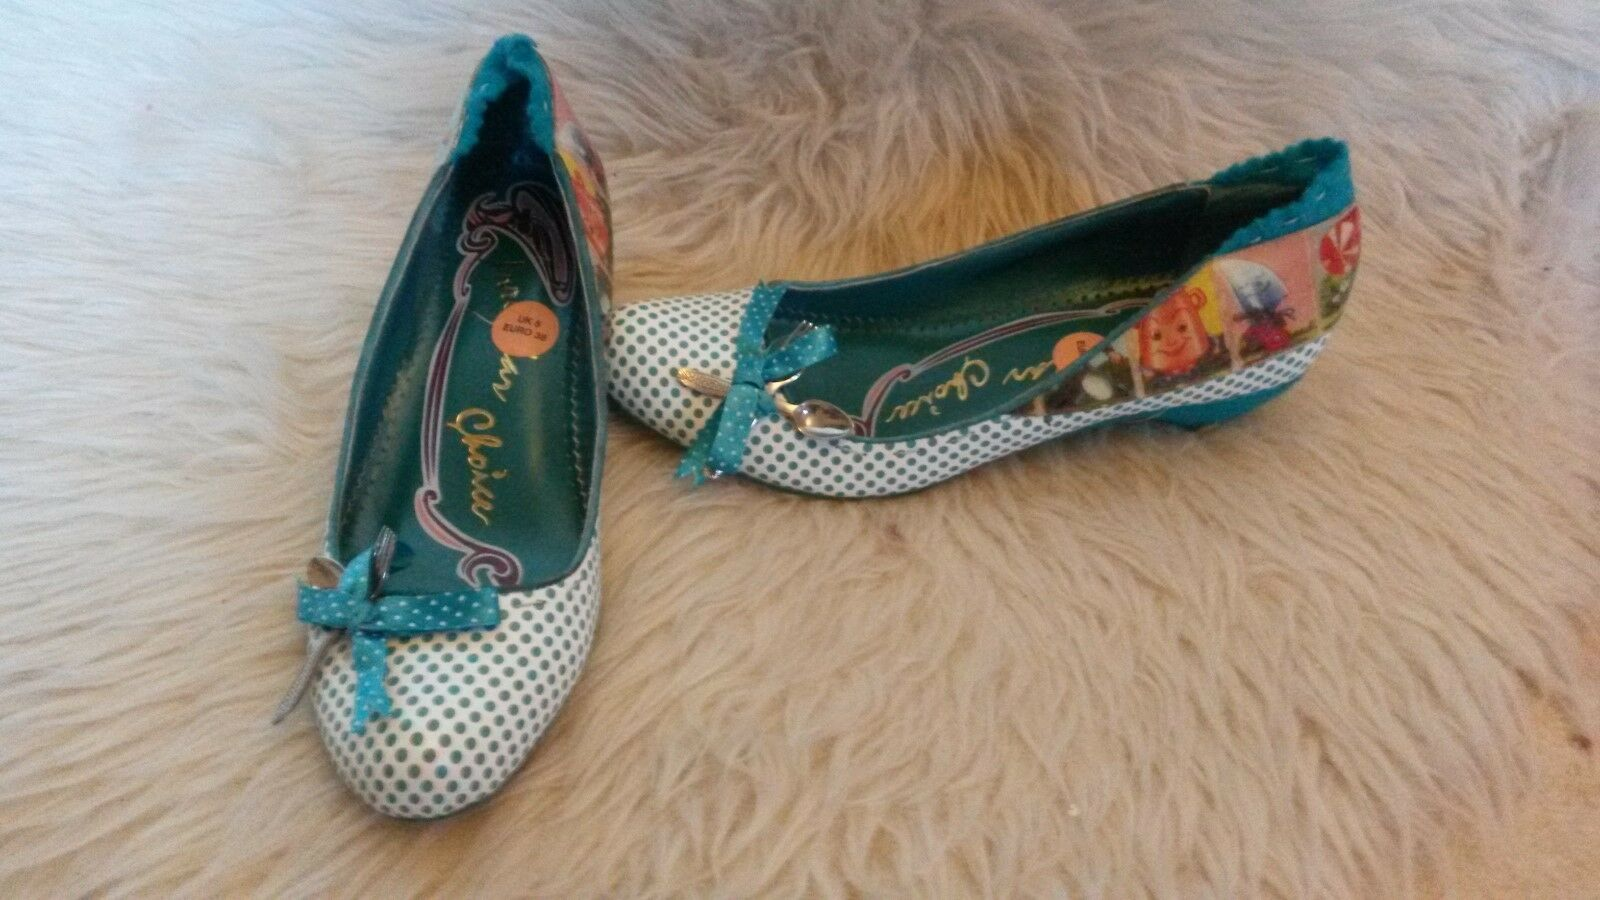 Ex Rare Irregular Choice 5 Nursery Rhyme Schuhes Uk 5 Choice EU 38- NEW 60b244